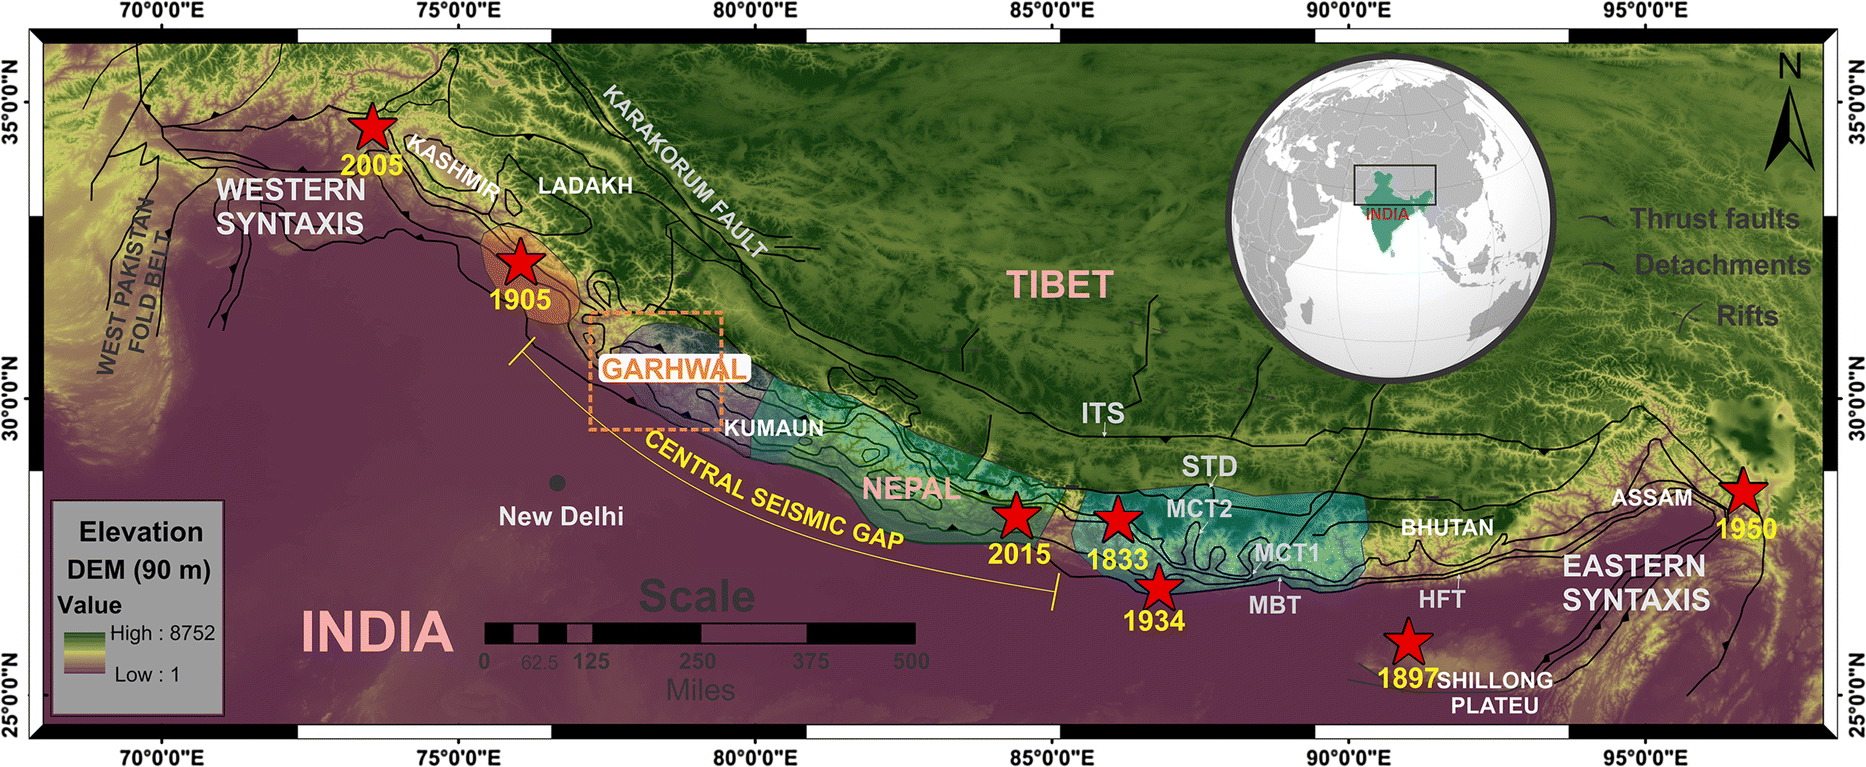 Earthquakes in the Garhwal Himalaya of the Central Seismic Gap: A